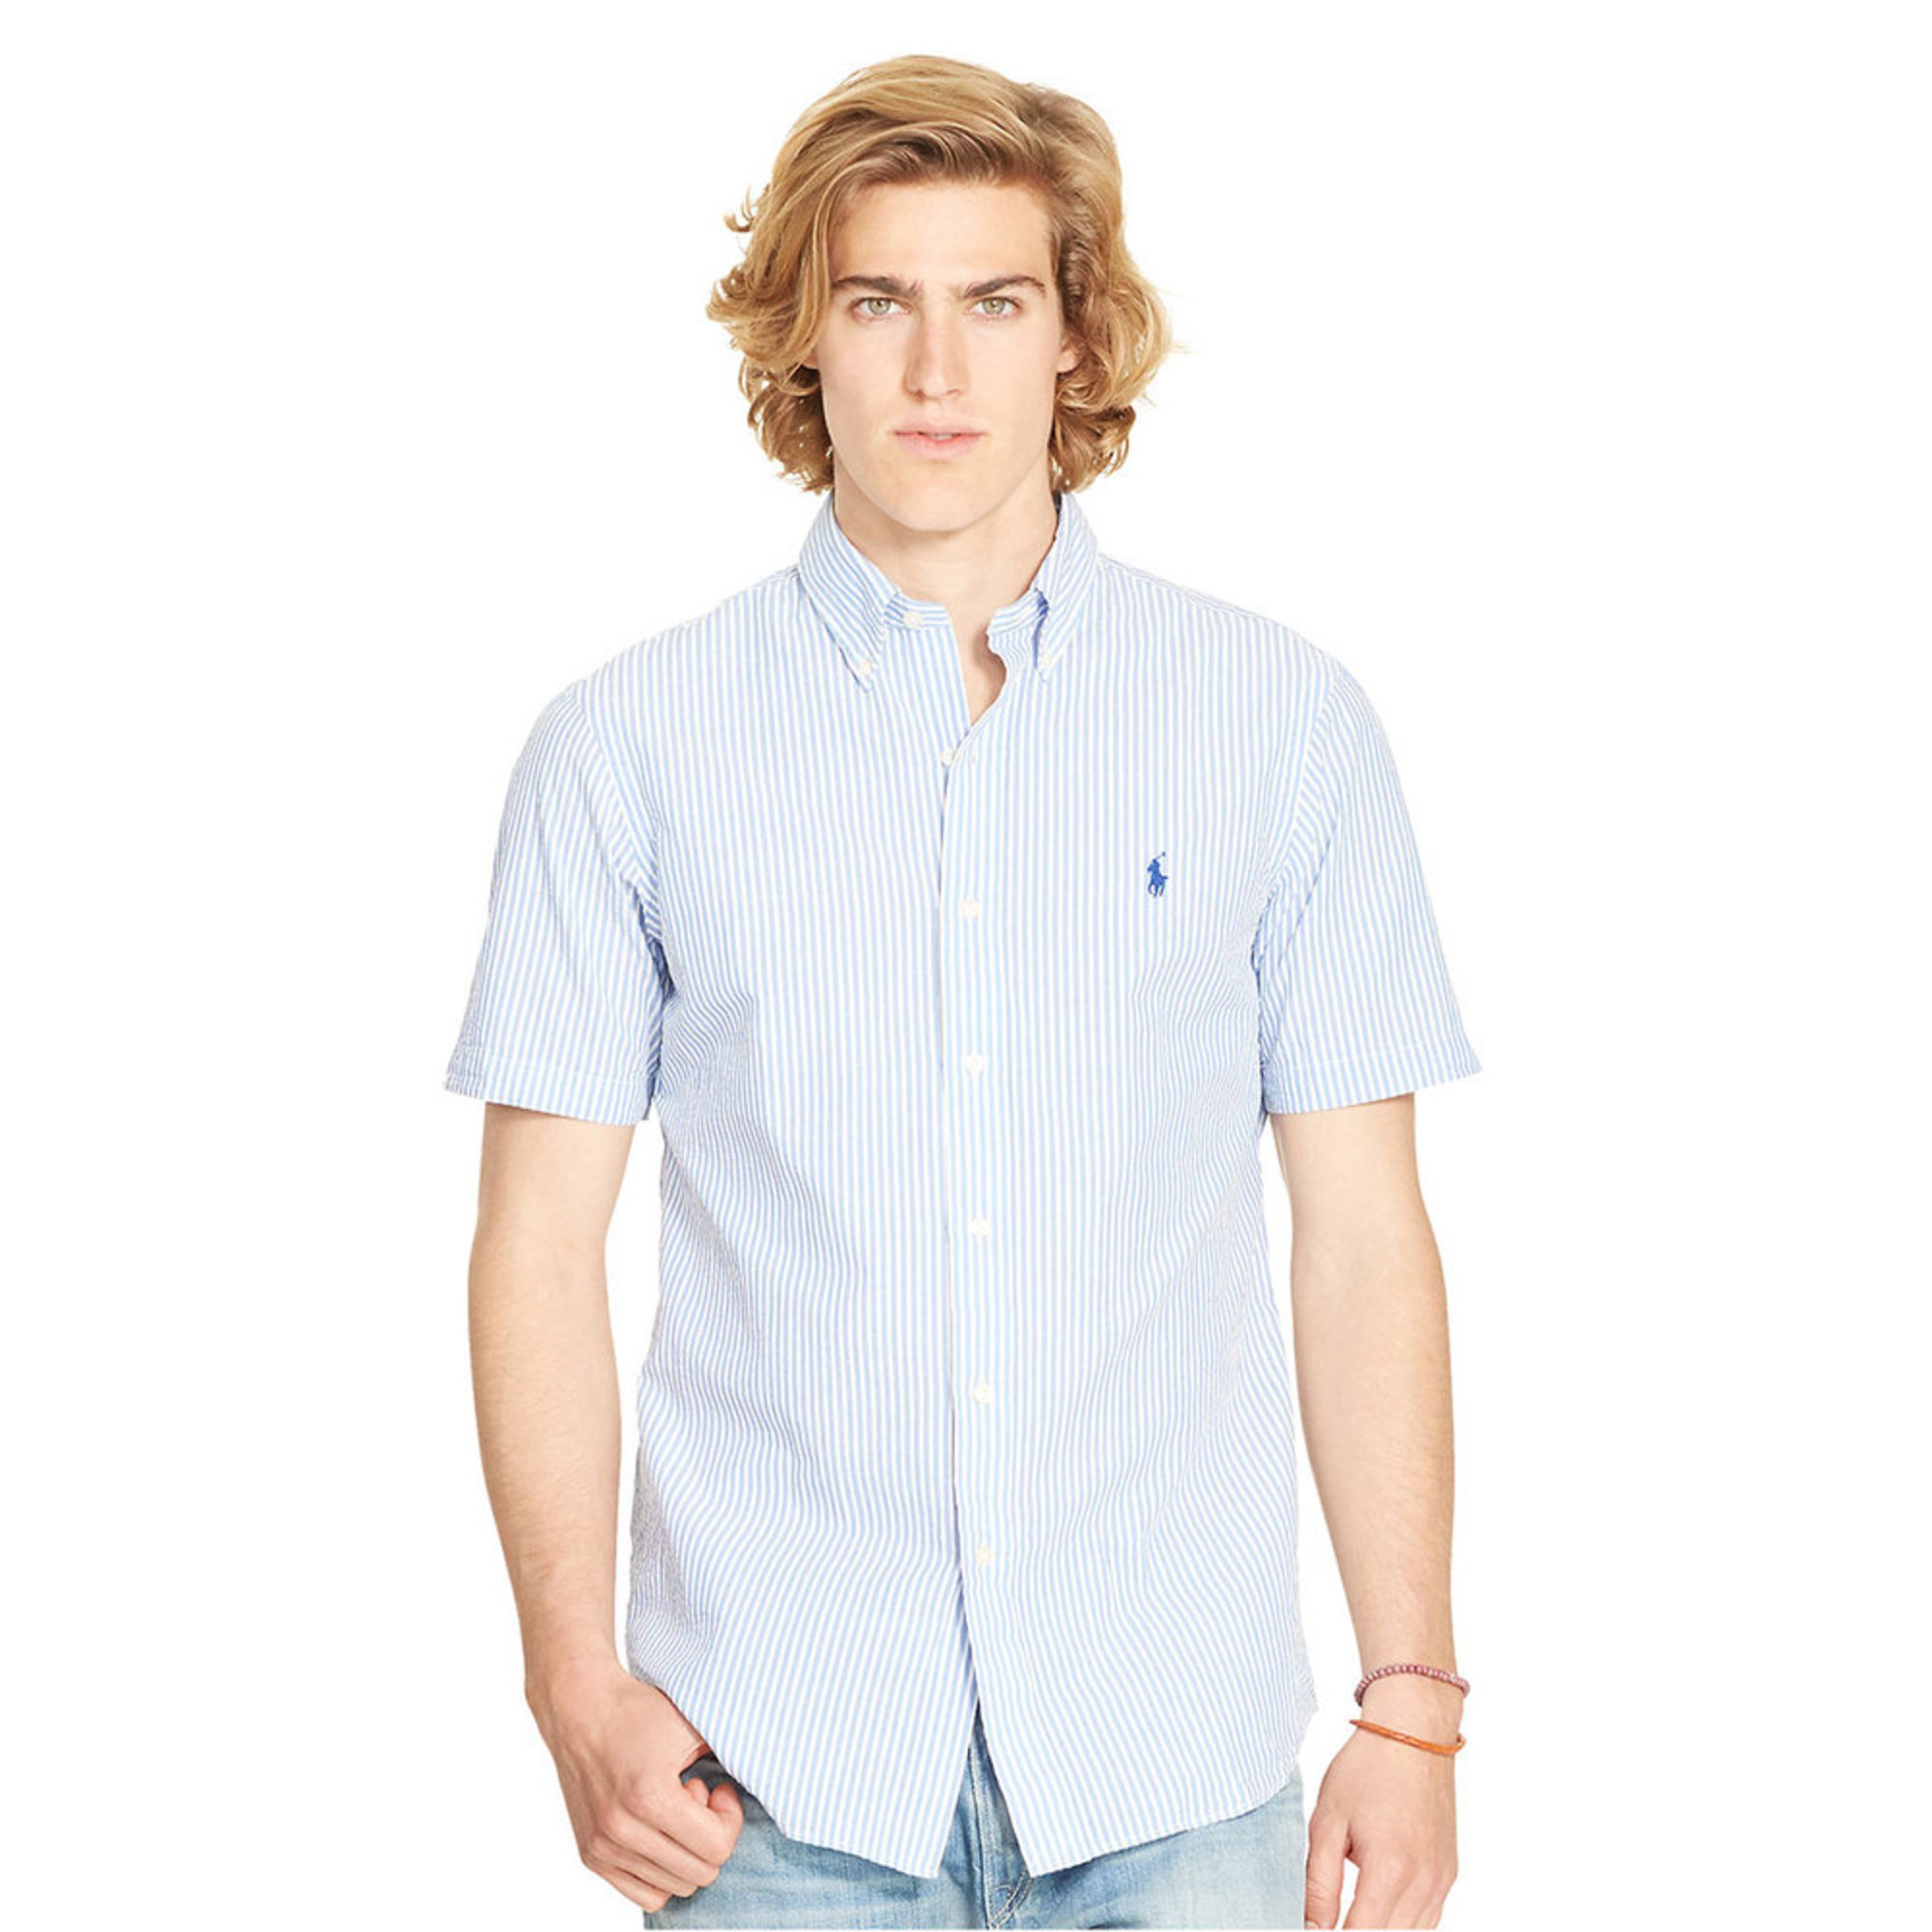 Polo ralph lauren men 39 s seersucker short sleeve shirt for Mens seersucker shirts on sale